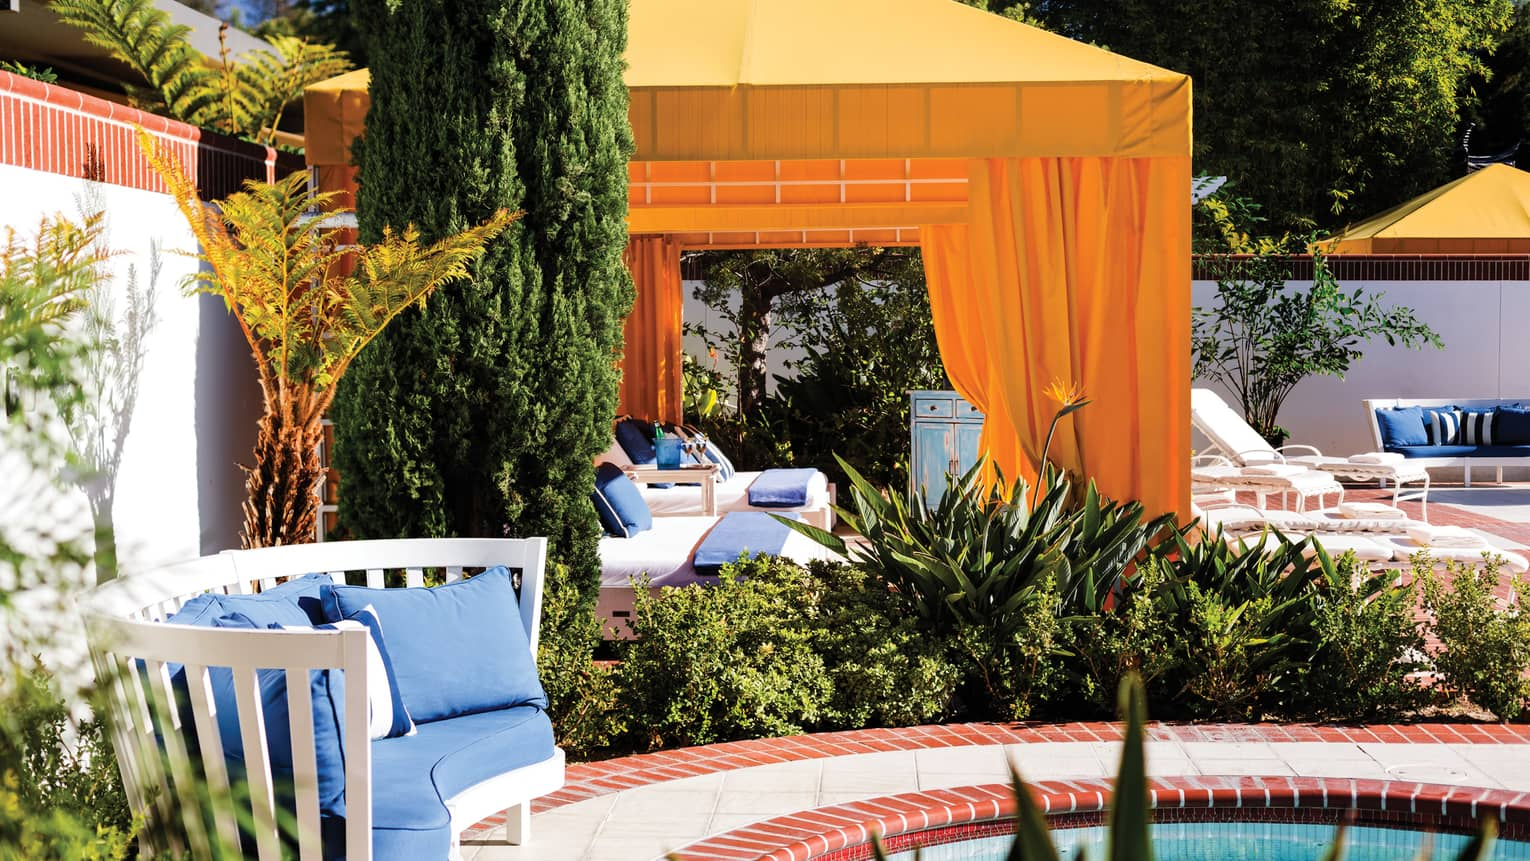 Yellow cabanas, trees on red brick patio by plush blue bench, outdoor swimming pool